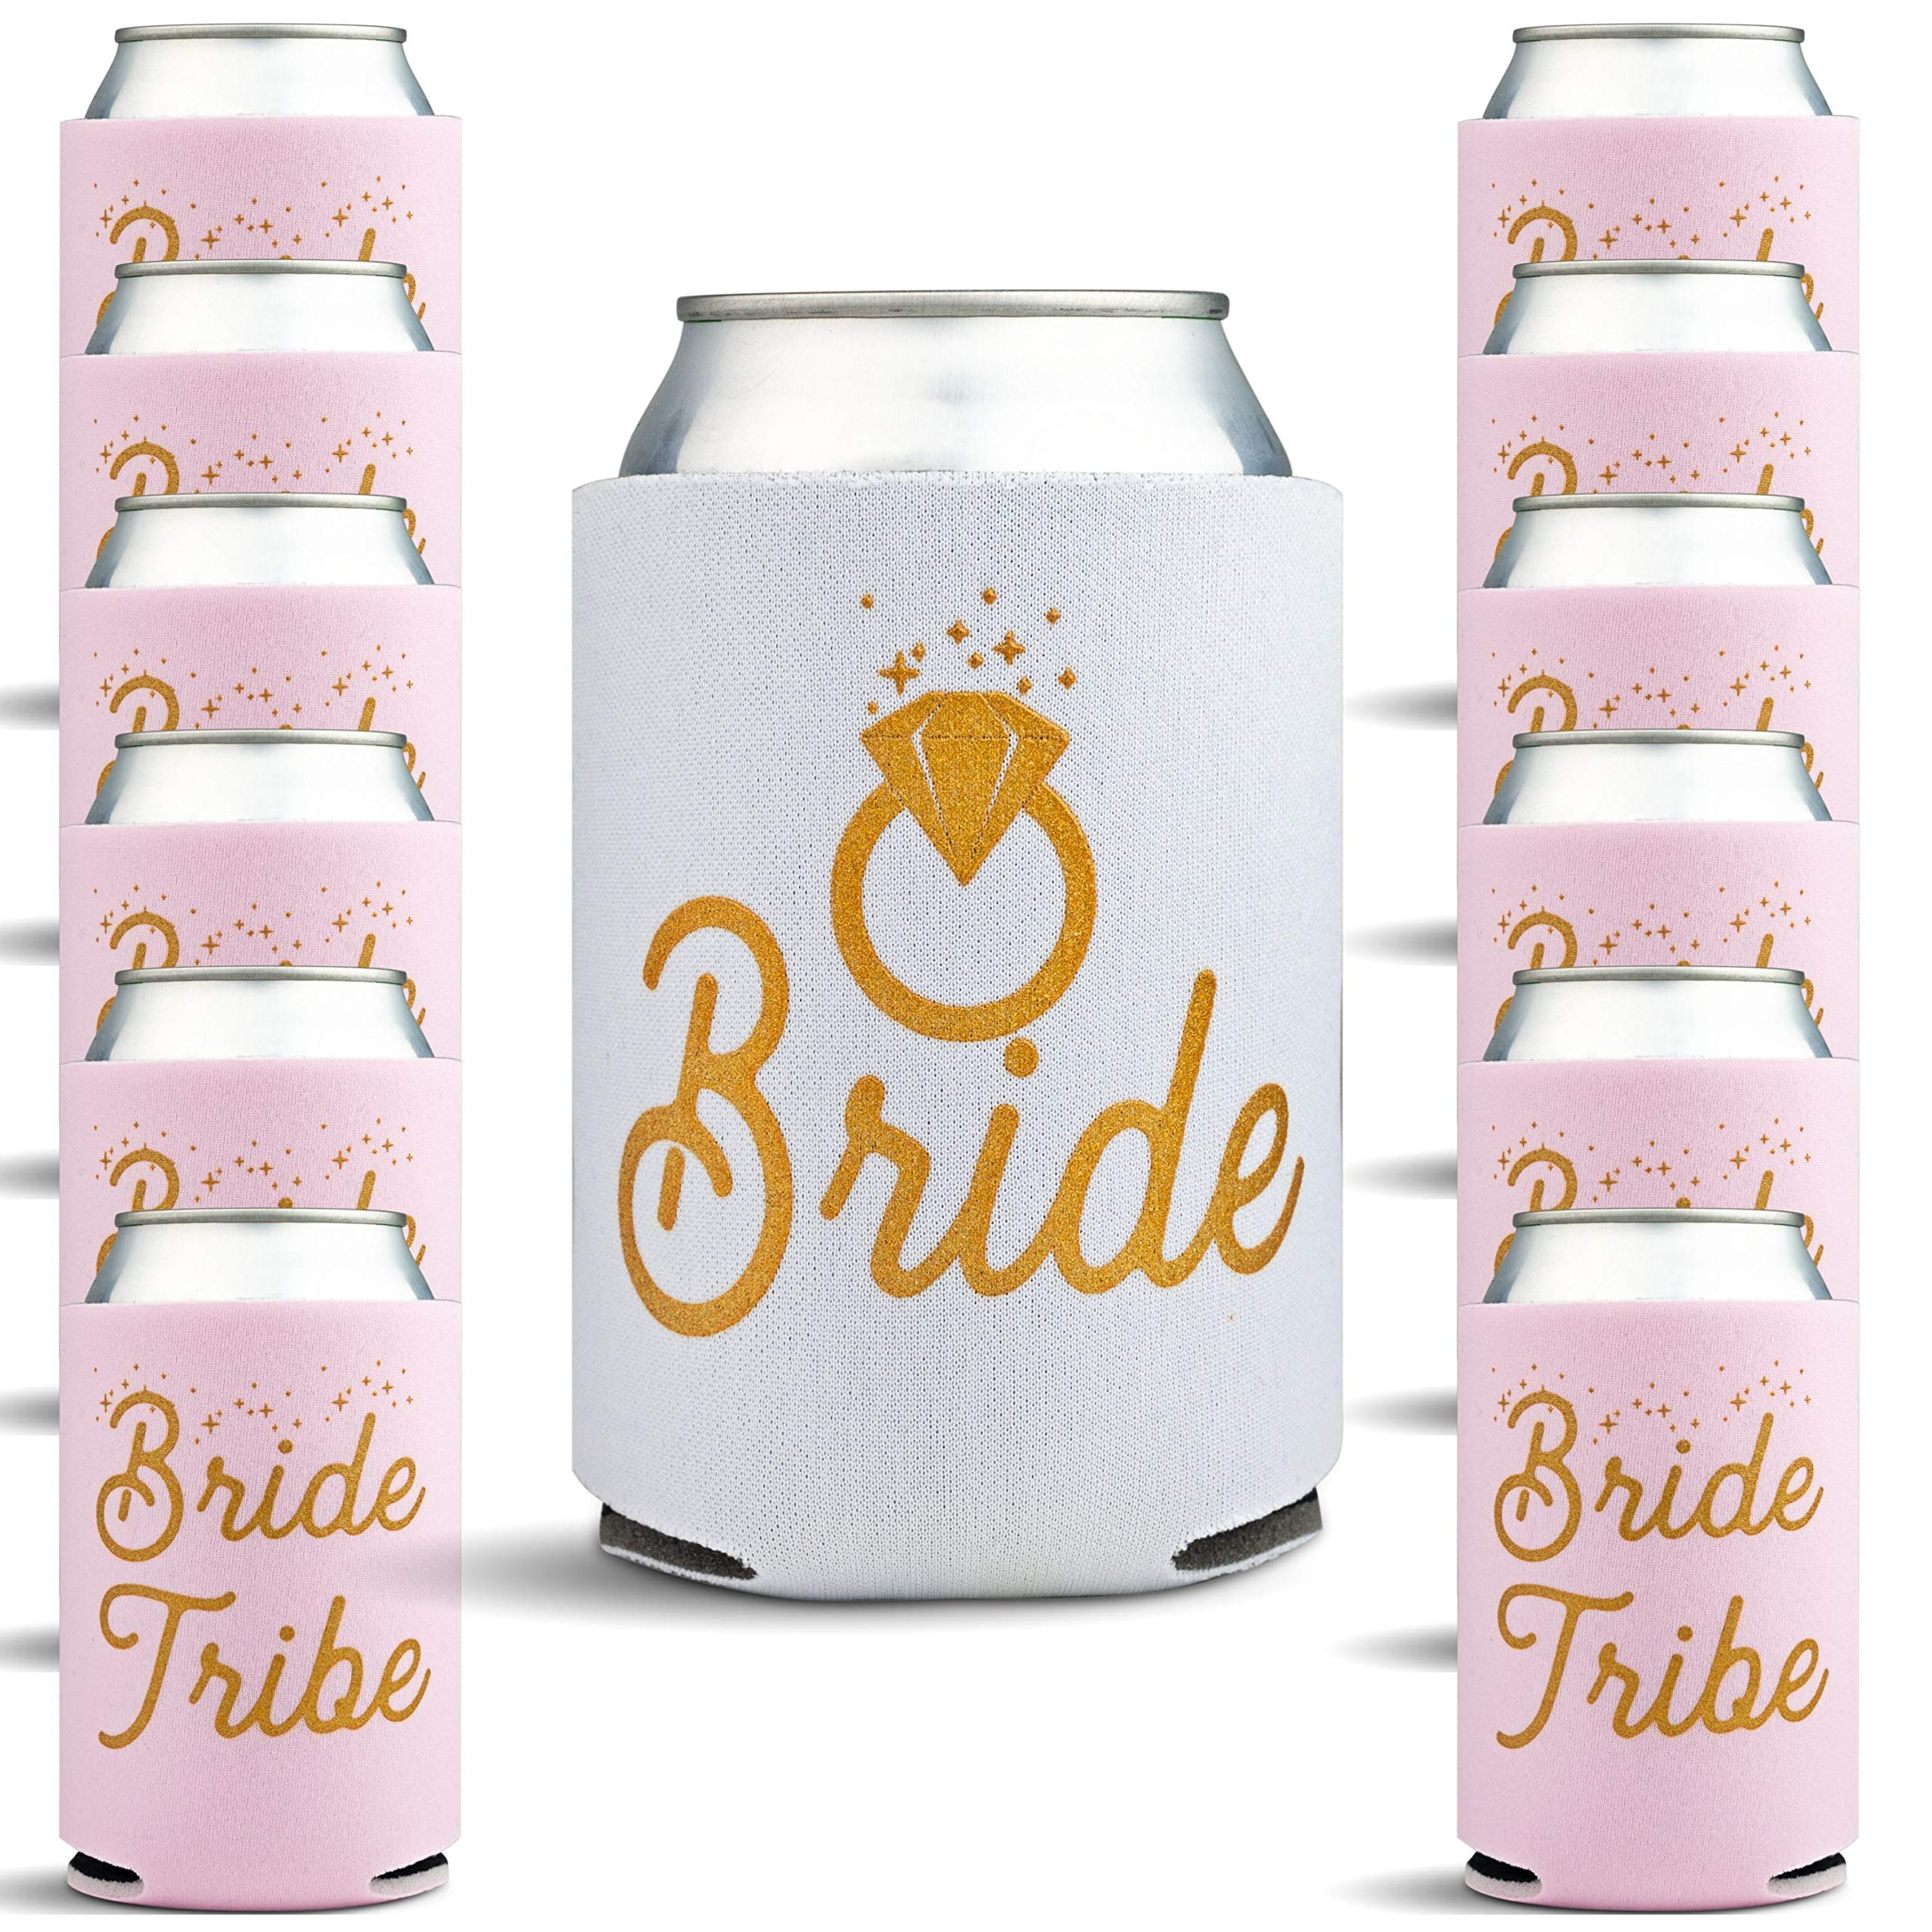 Bachelorette Party Favors - 13 Pack Bridal Shower Decor Can Coolers with Bonus Game - Bachelorette Gifts for Bride, 13 Beer Can Insulated Sleeves Bachelorette Party Supplies, White, Pink with Gold by Gold Coastal